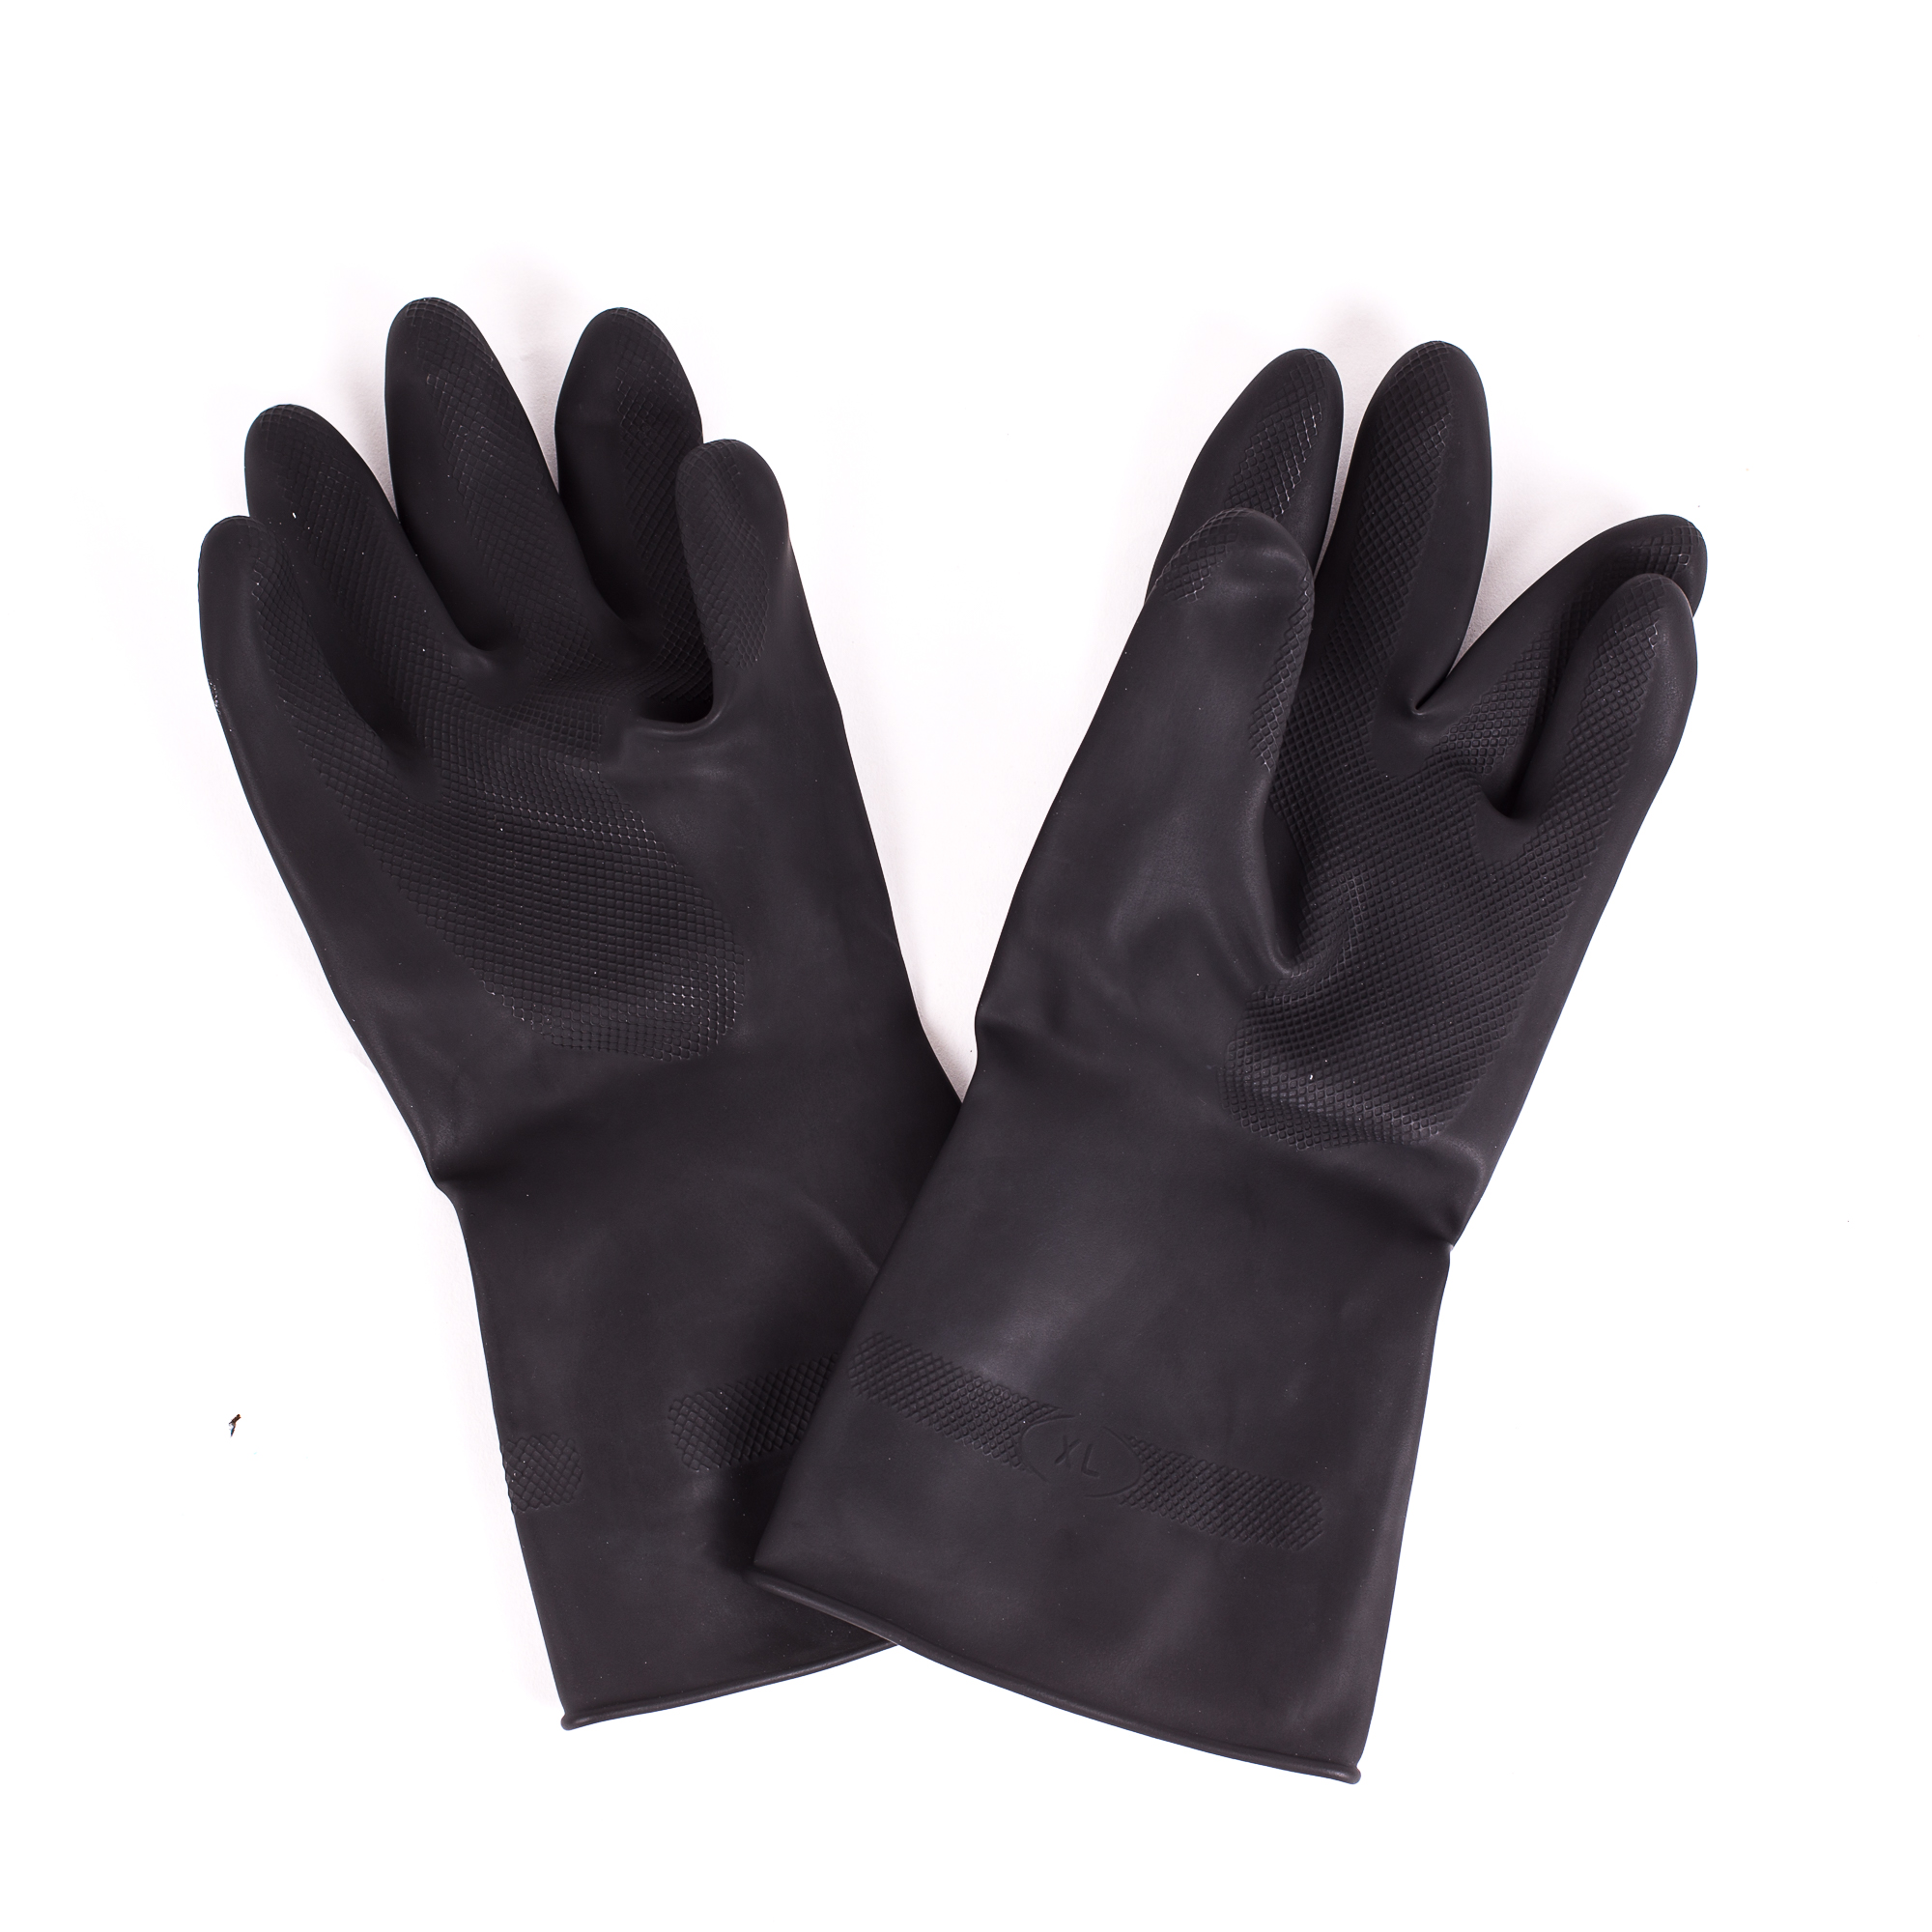 Marigold Black Are Tough Heavy Duty Chemical Resistant Gloves